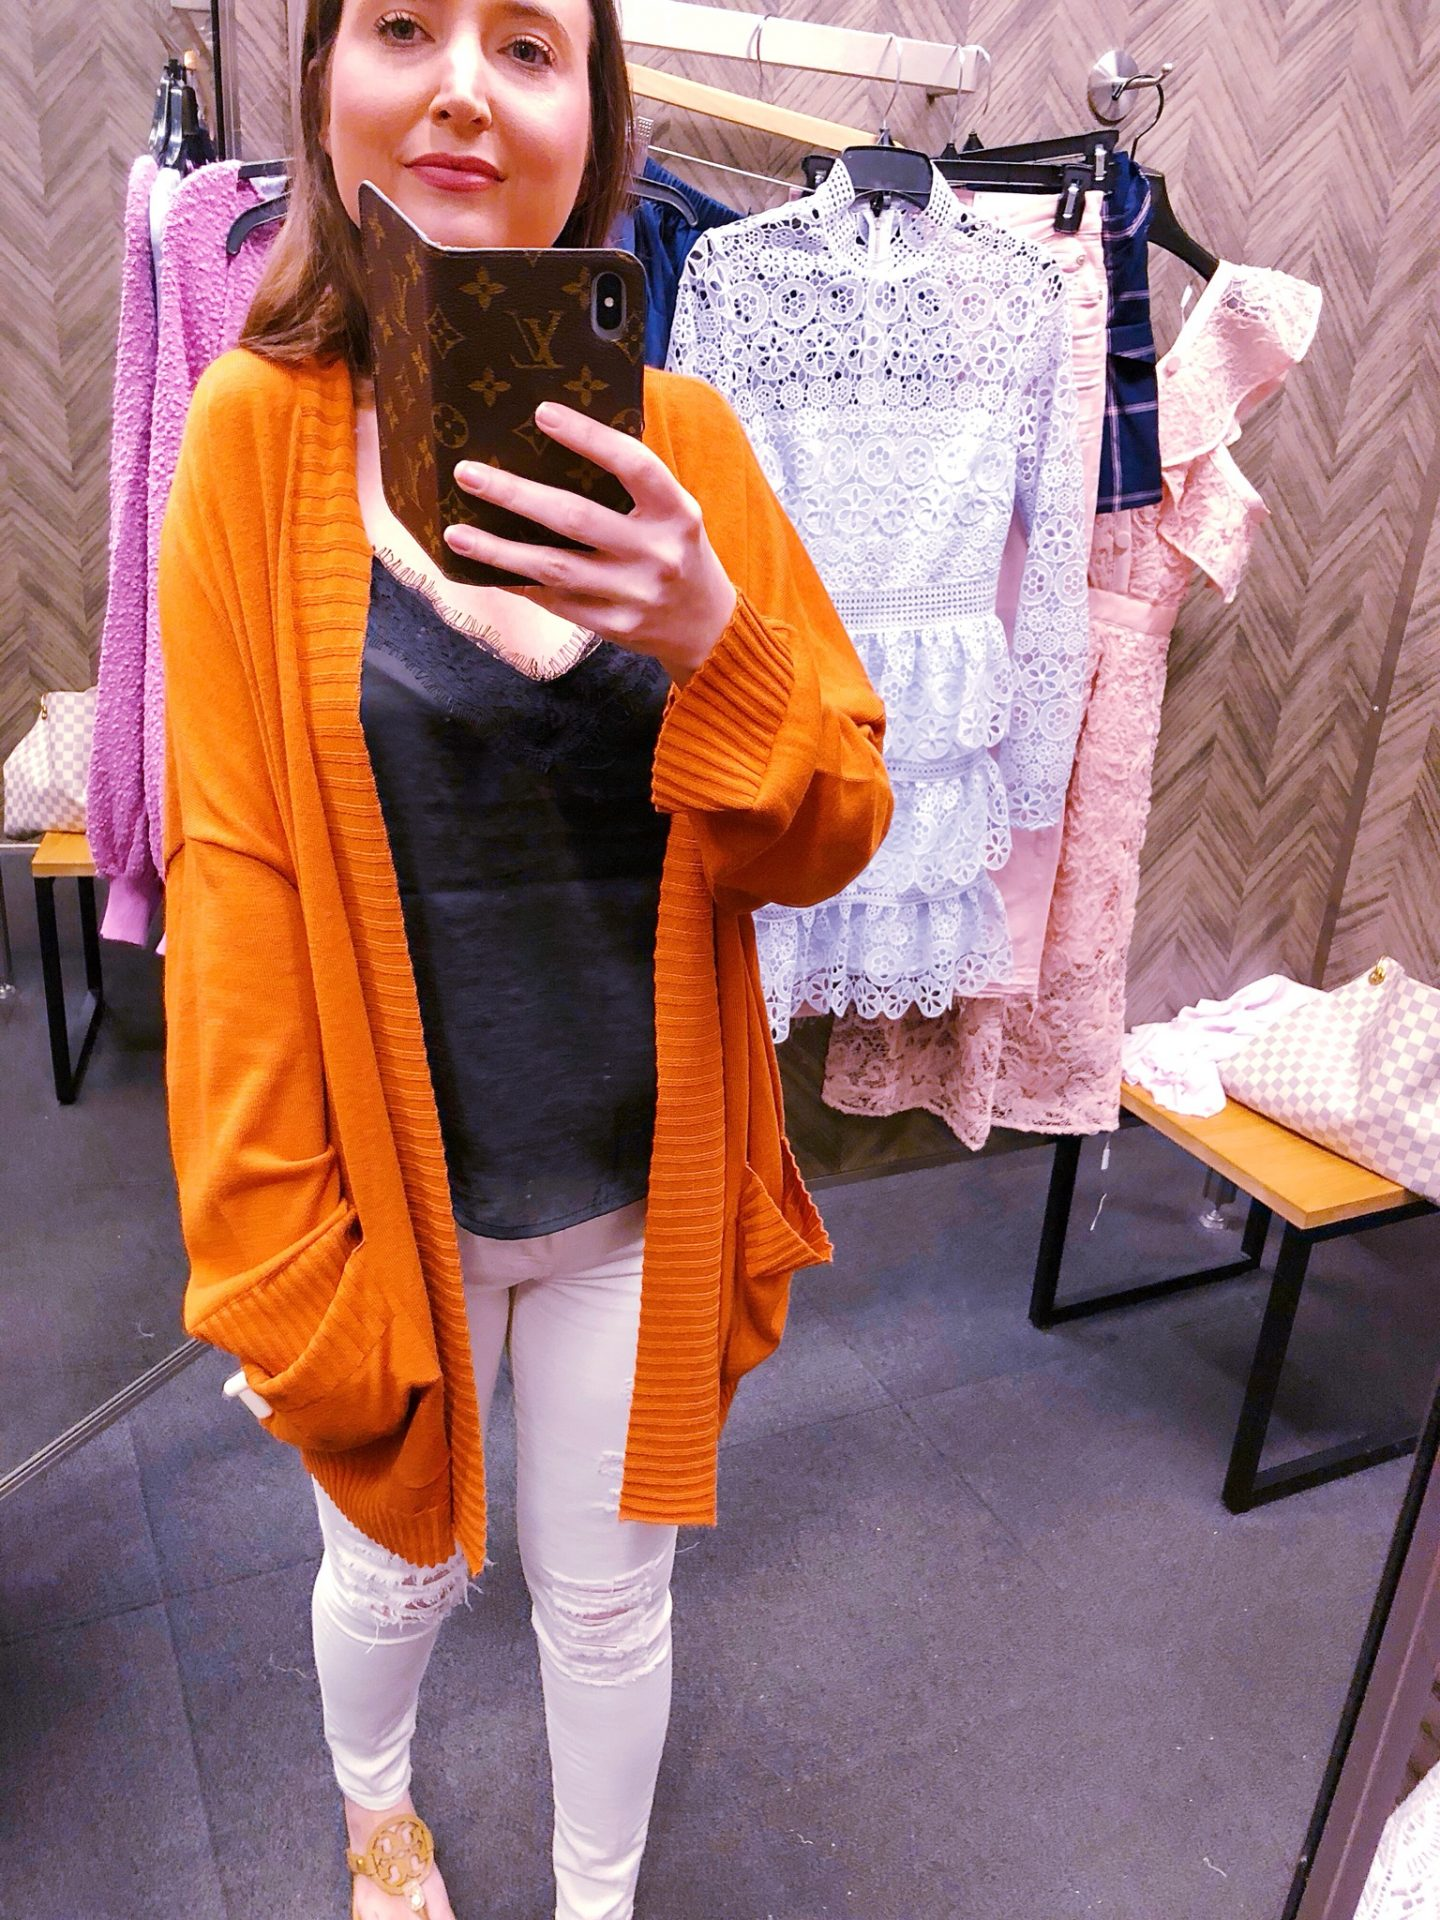 chelsea28 oversize open cardigan, chelsea28 cardigan, rustic orange cardigan, Nordstrom sale lace cami, Nordstrom anniversary sale, Nordstrom anniversary sale 2018, Nordstrom anniversary sale haul, Nordstrom anniversary sale dressing room try-on